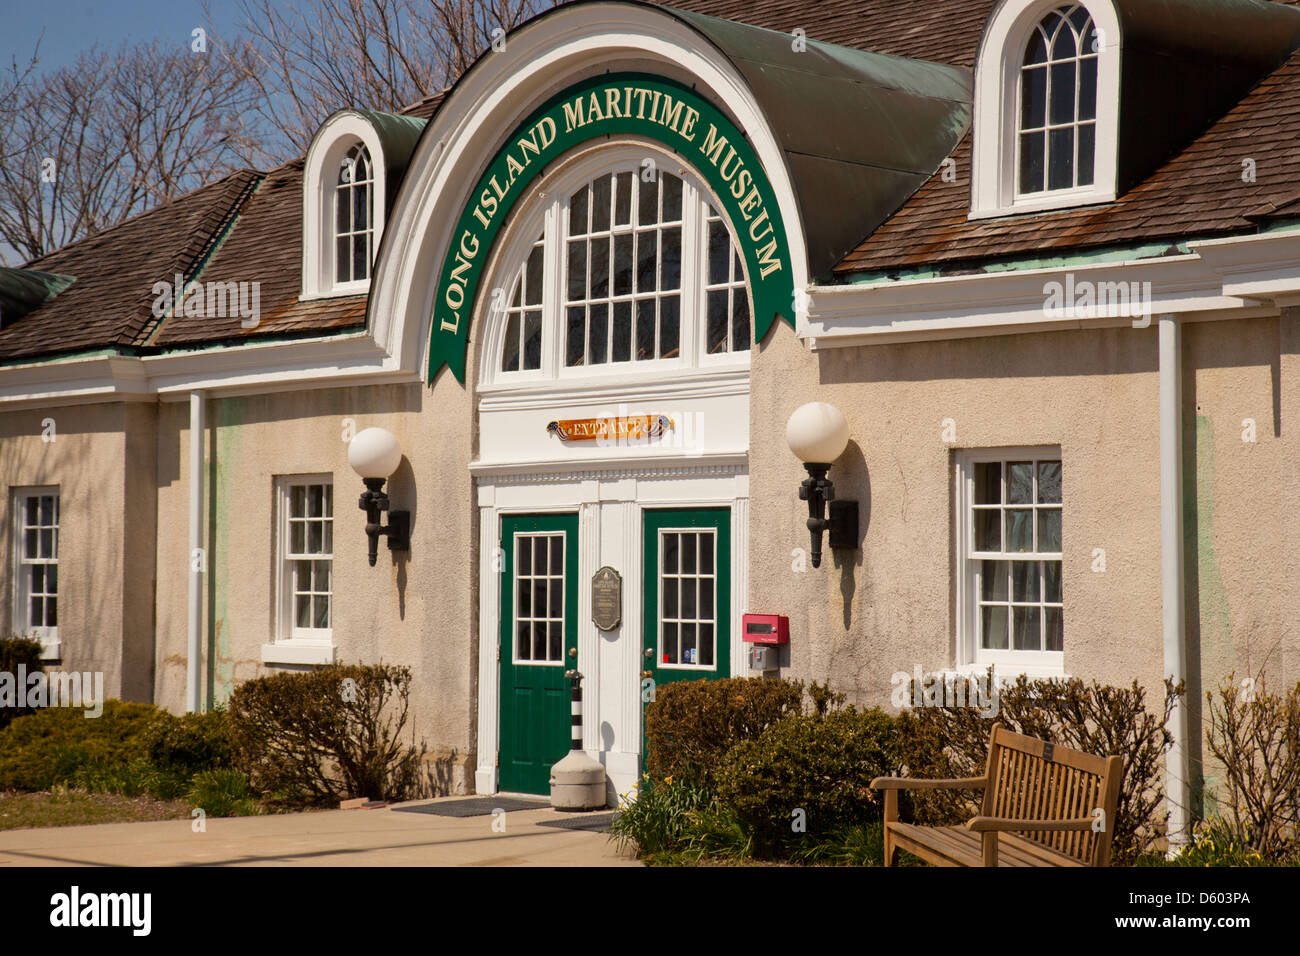 Long Island Maritime Museum in West Sayville New York Stock Photo